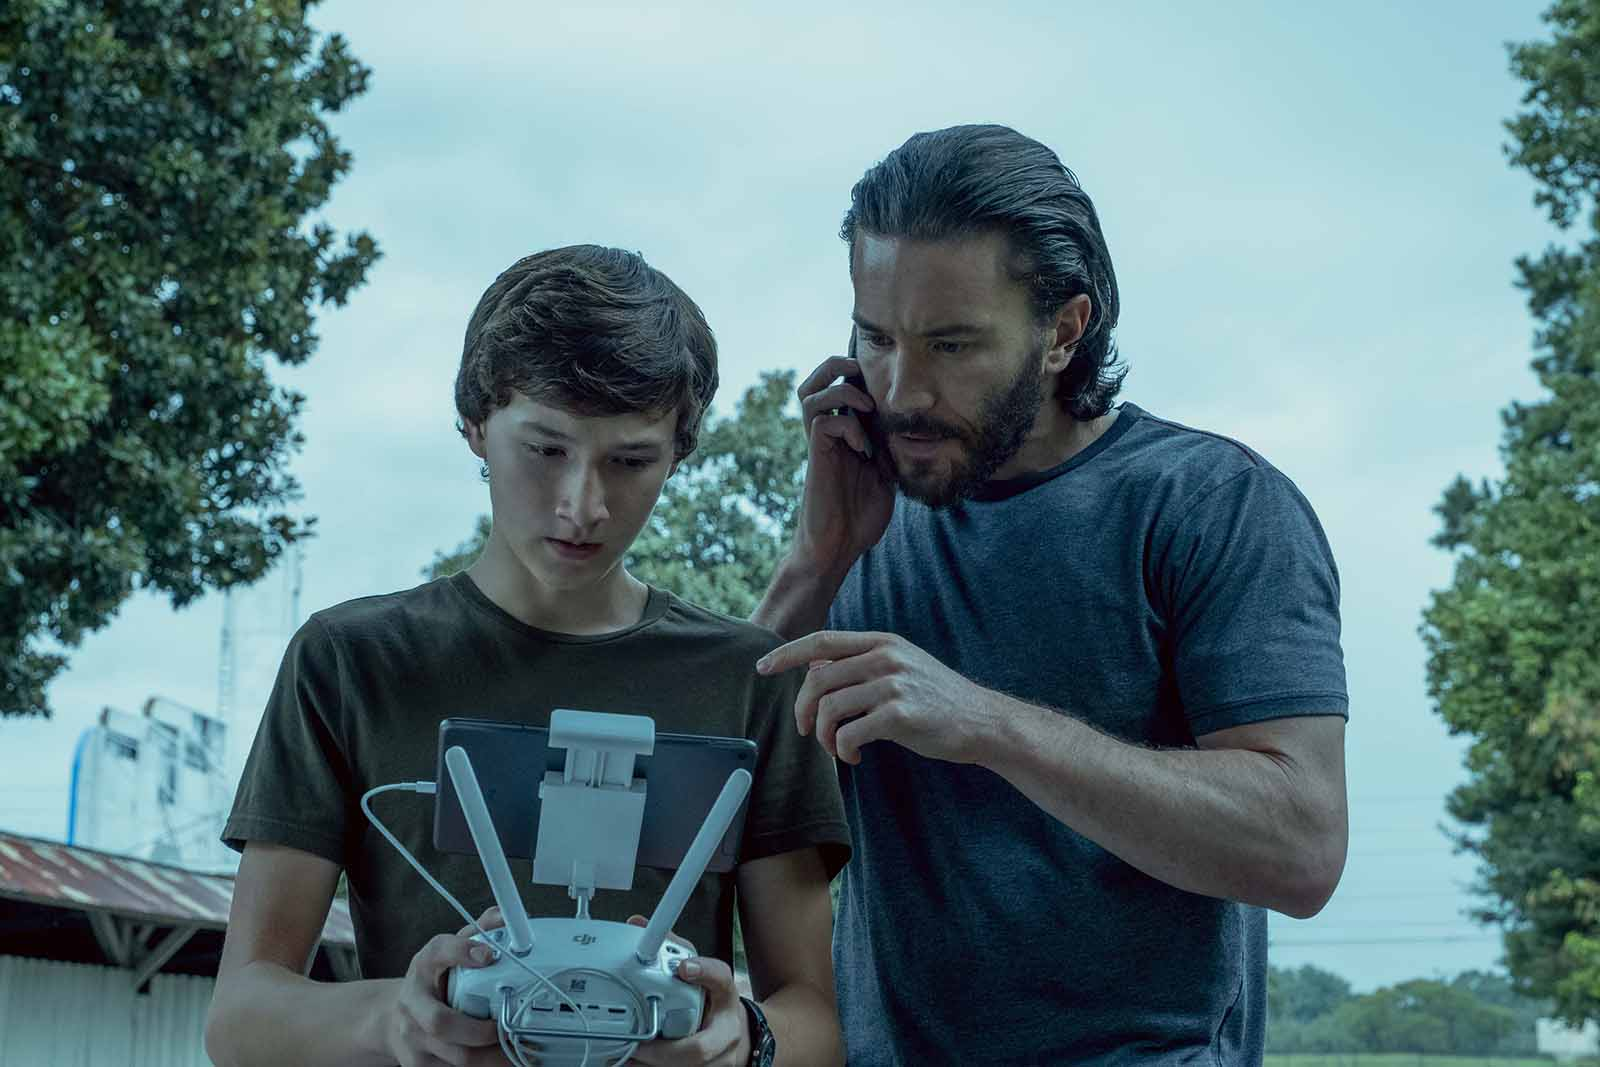 Now that Netflix has declared 'Ozark' season 4 to be the final season, there's far too many loose ends that need to be tied up in the new season.